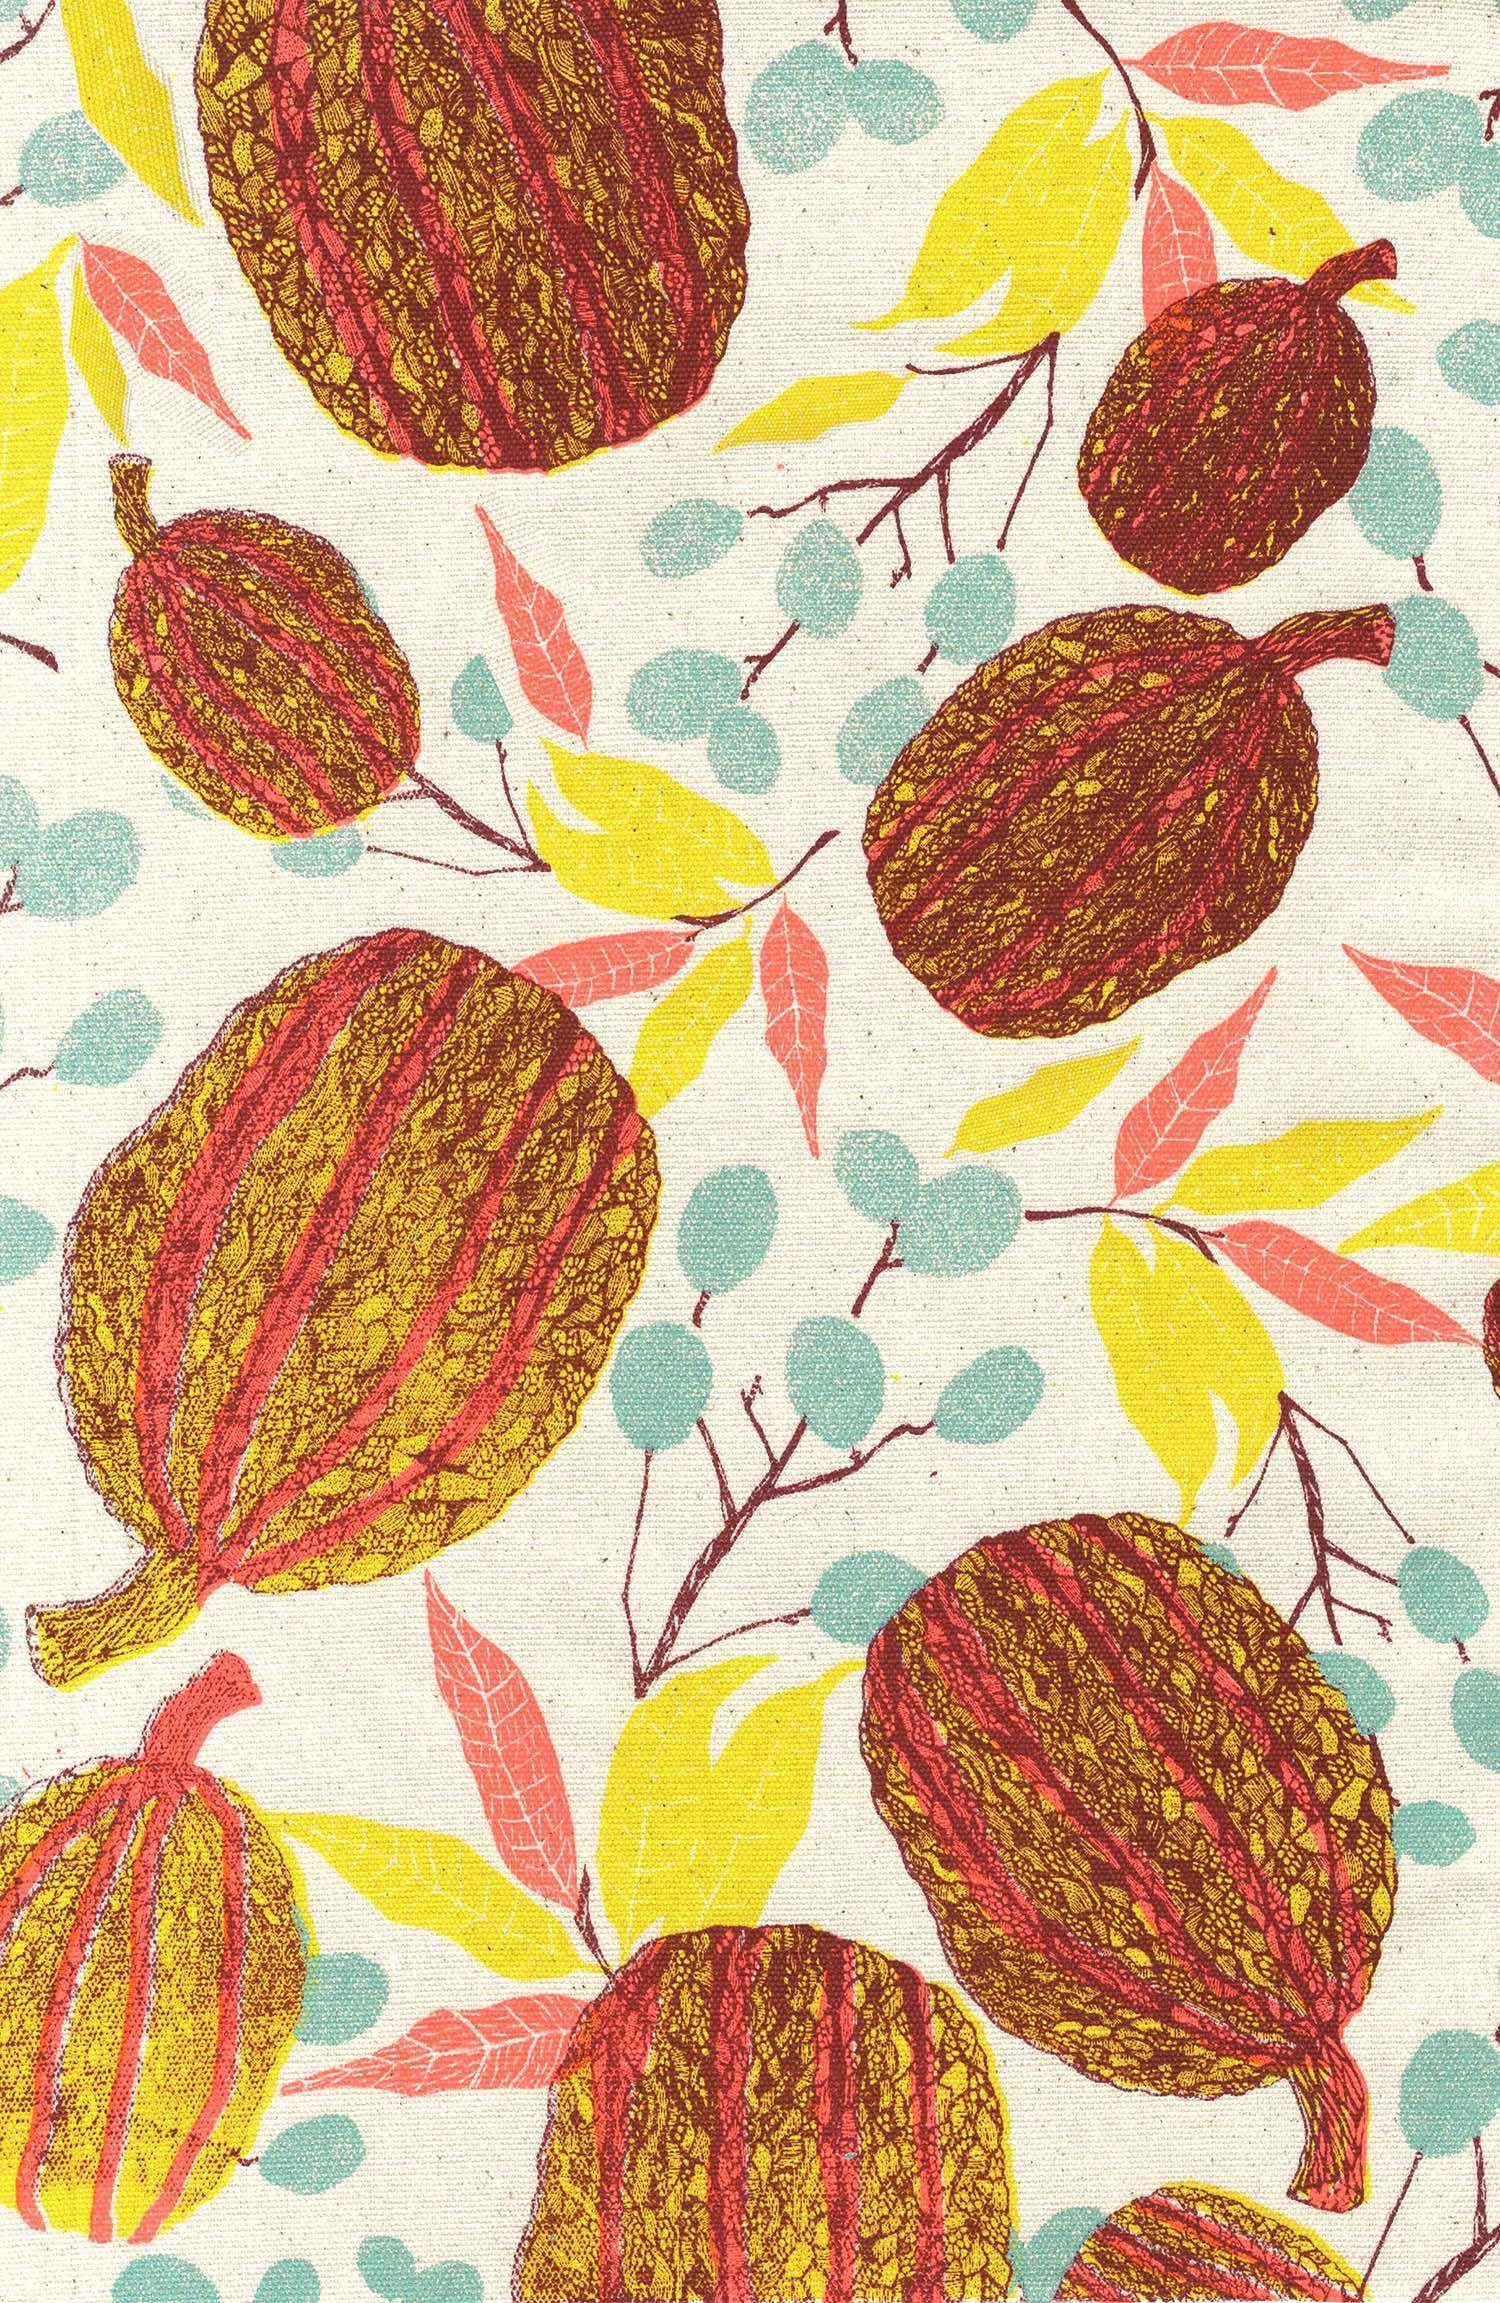 Patterned Fruits Series By Hannah Rampley With Images Tropical